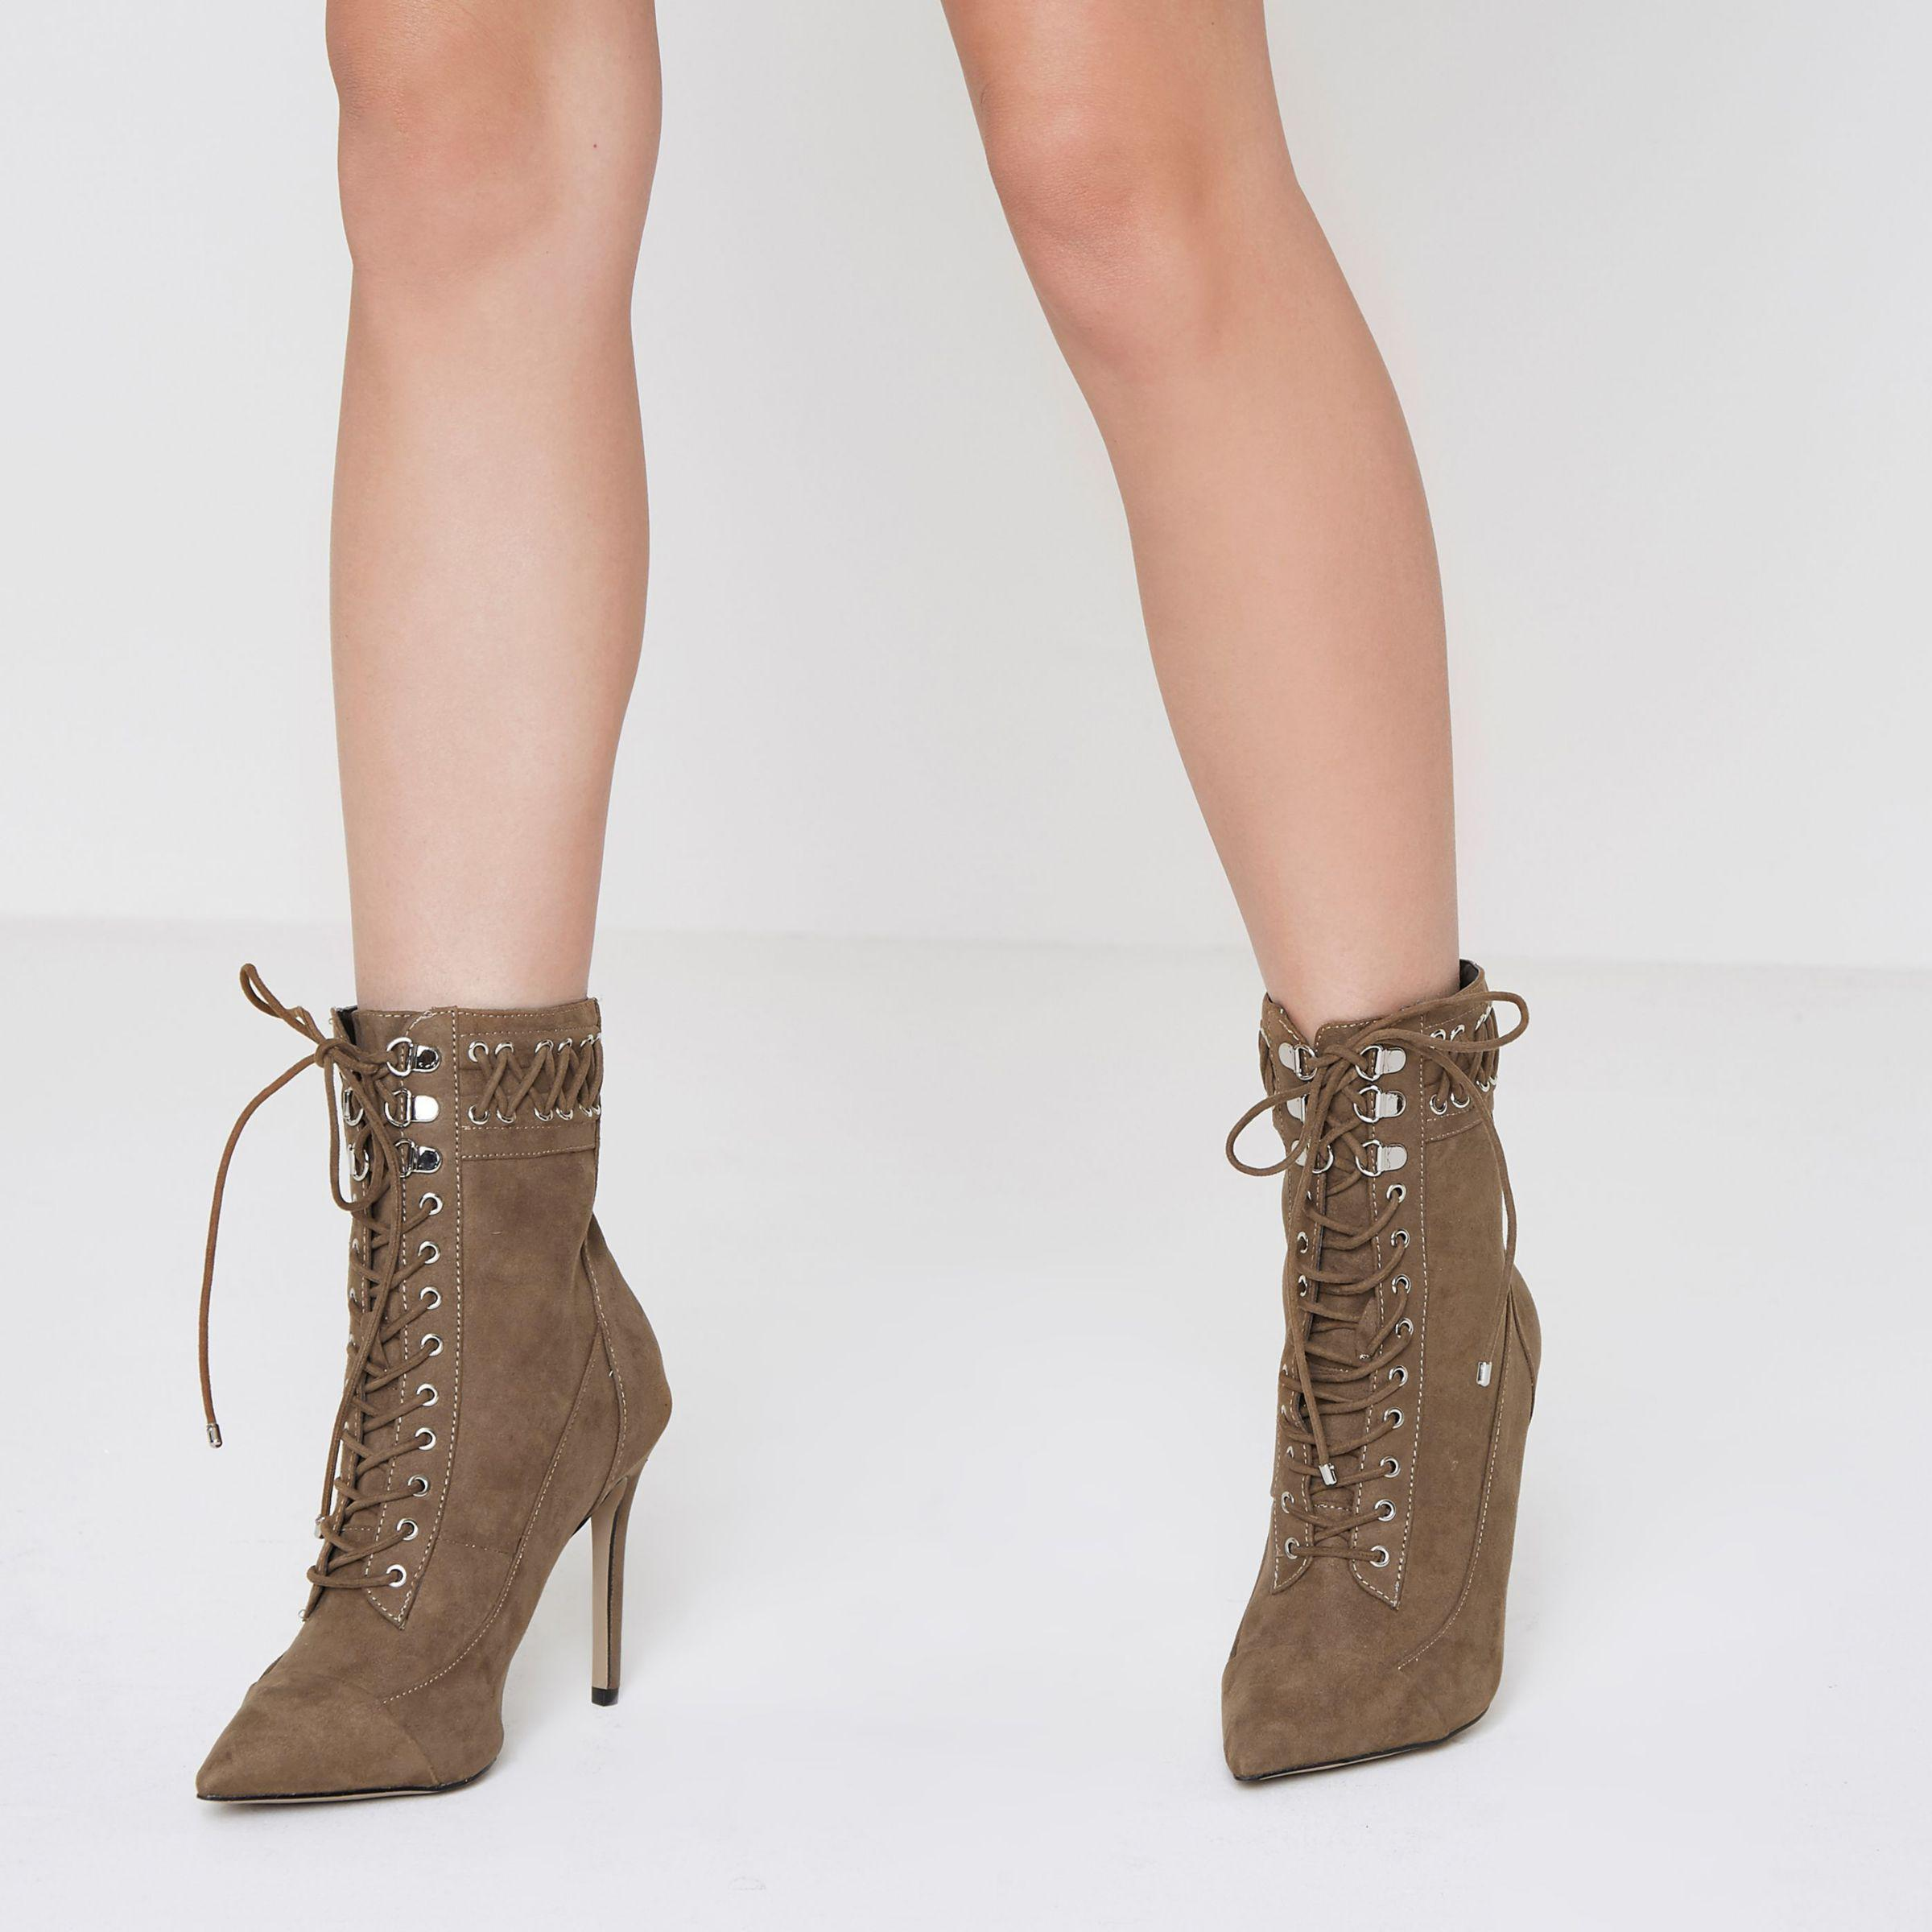 River Island Beige Pointed Lace-up Heeled Boots in Cream (Natural)